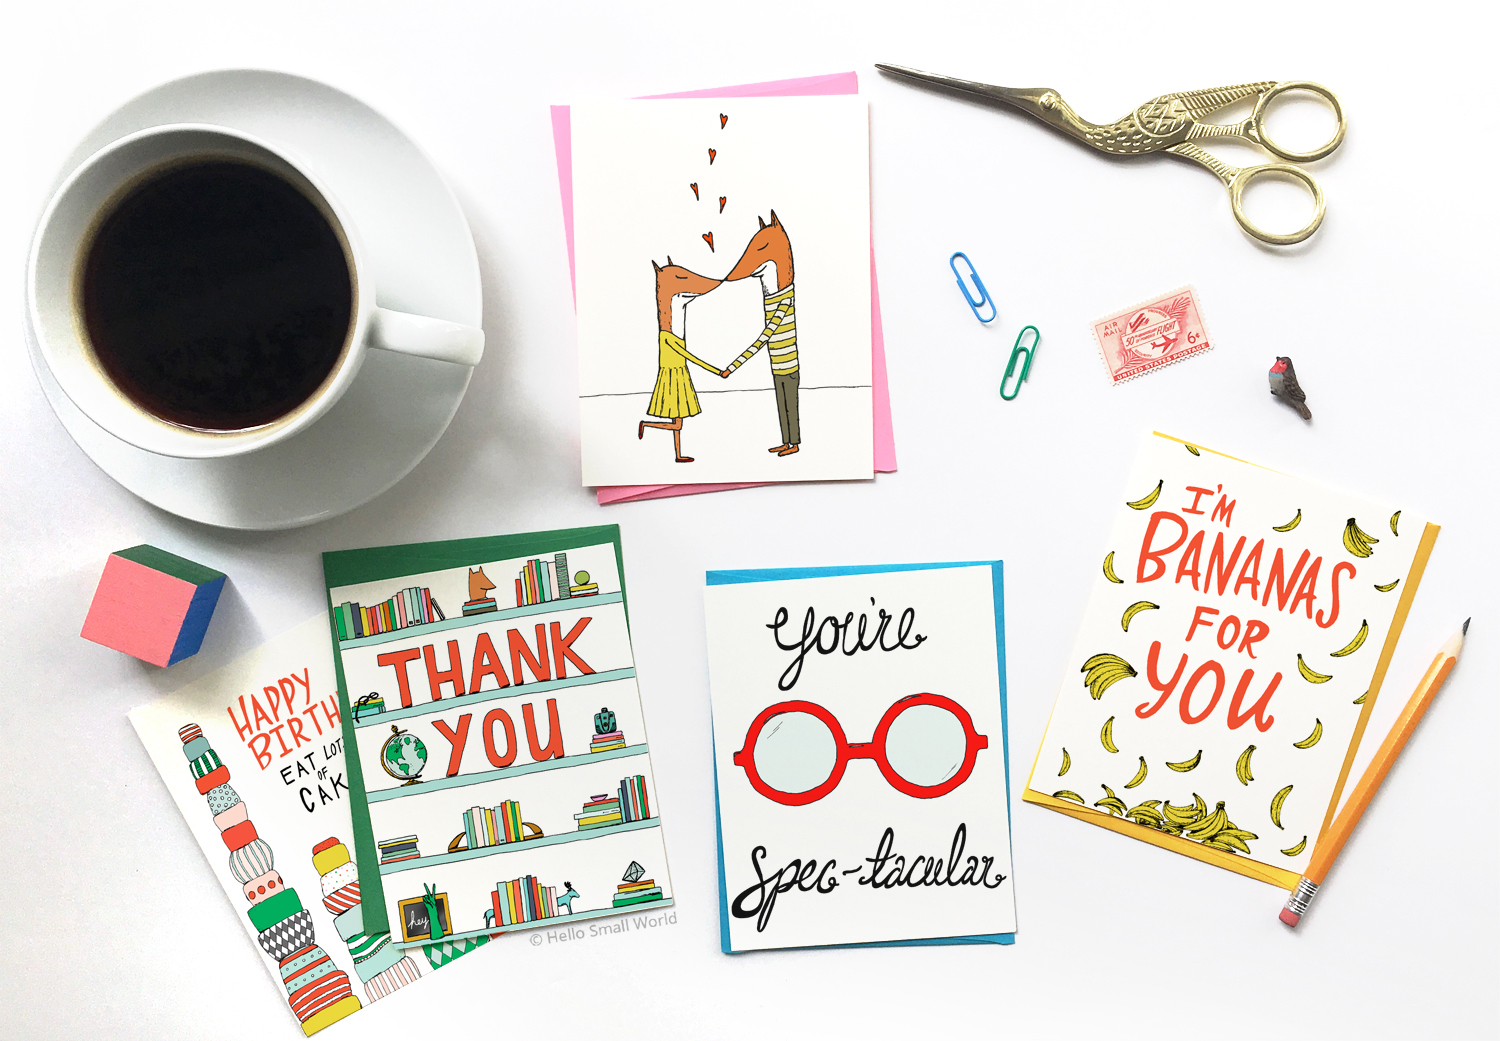 wholesale after etsy wholesale, hello small world wholesale, wholesale greeting cards, wholesale gift, illustrated greeting cards